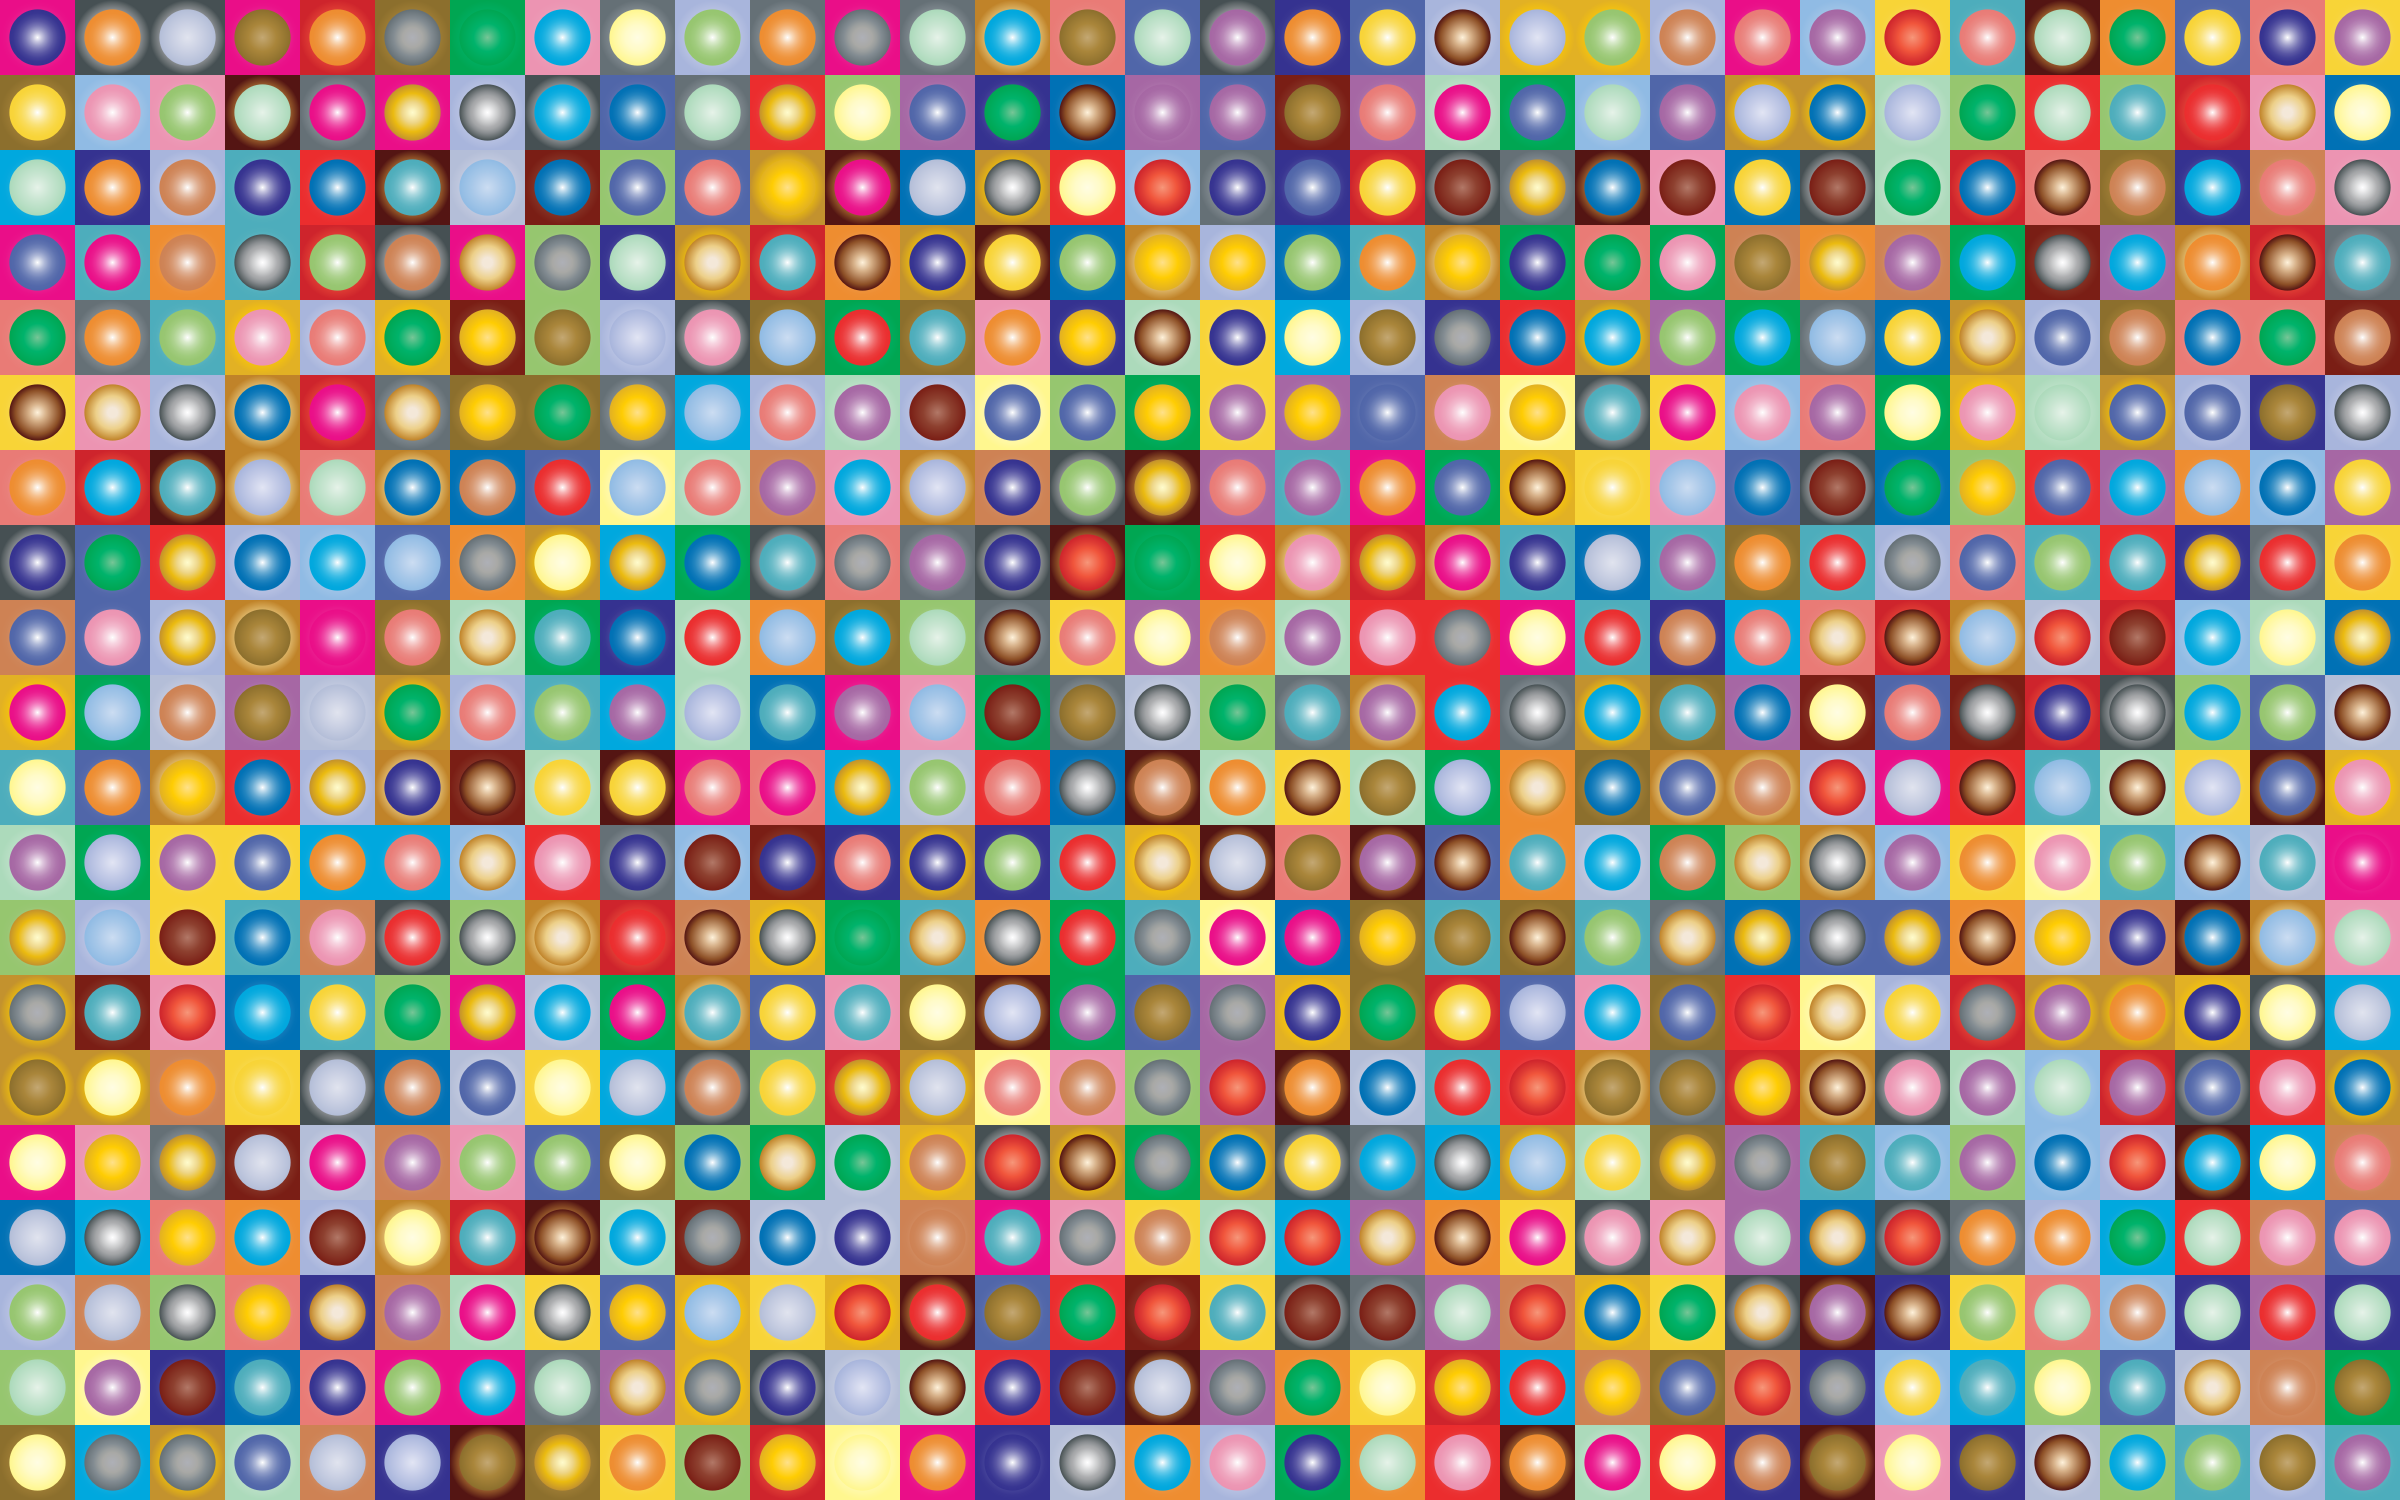 Prismatic Circles And Squares Checkerboard Pattern 2 by GDJ